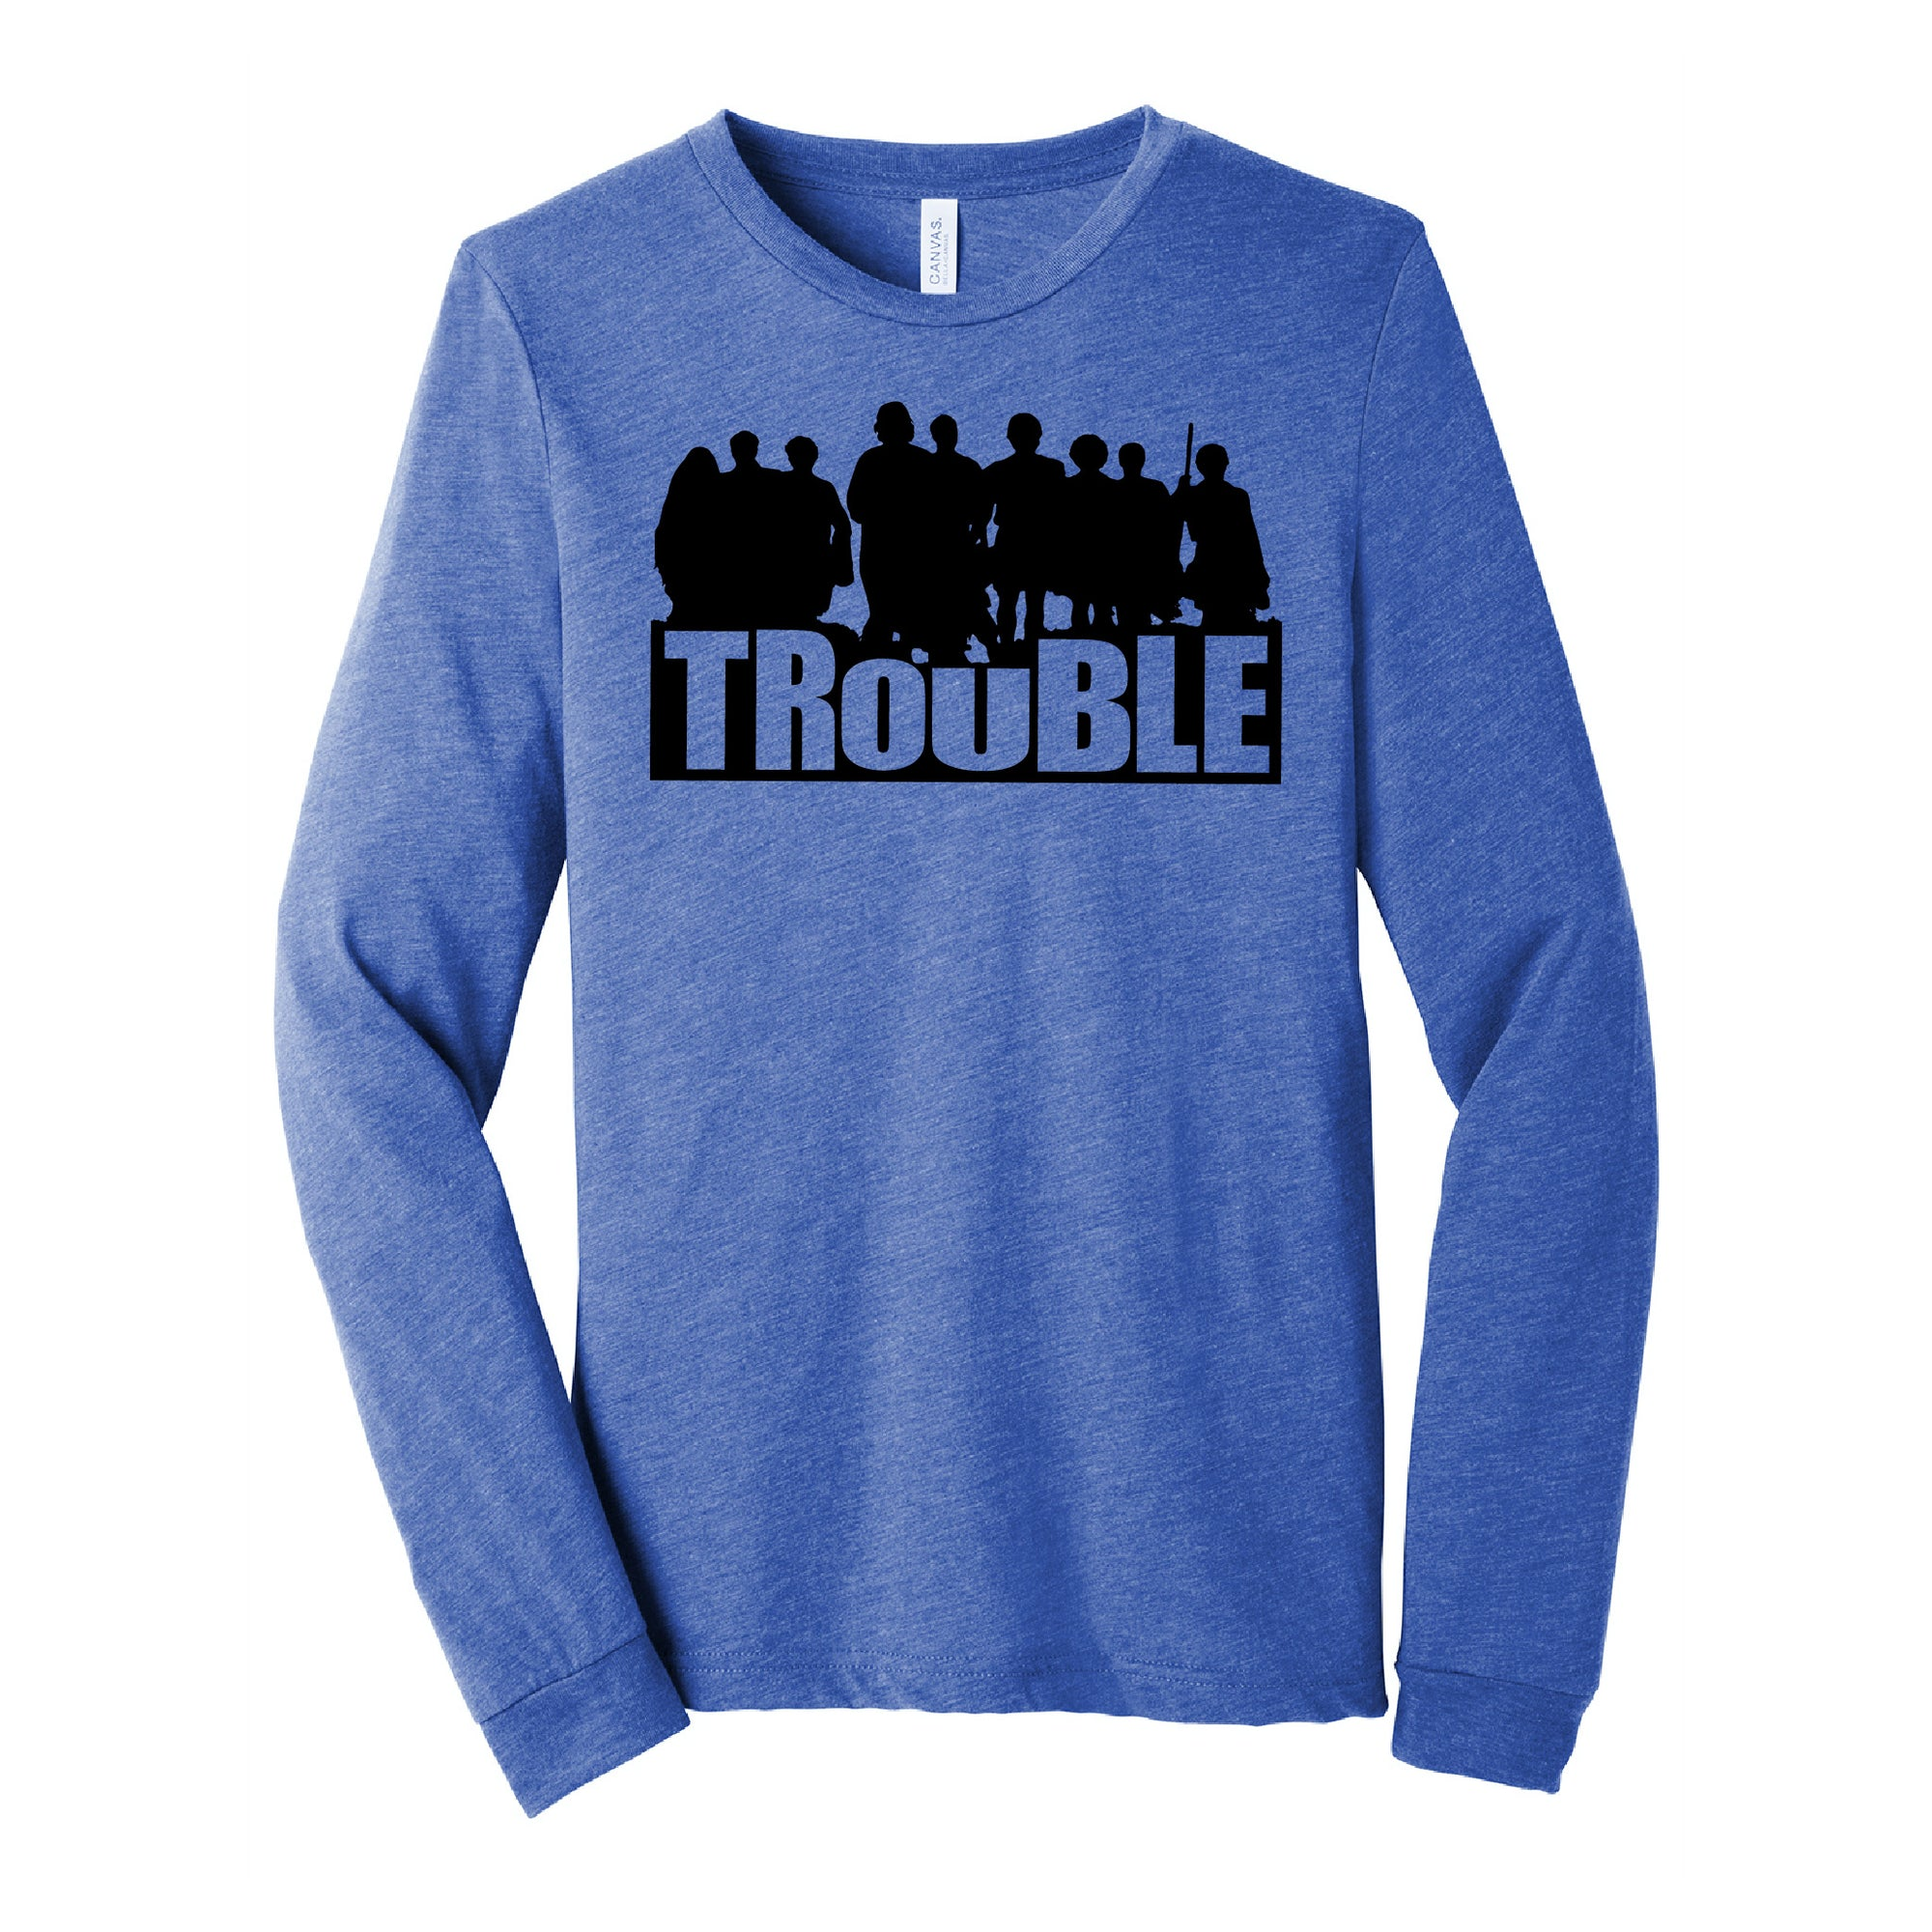 Trouble Long Sleeve Shirt